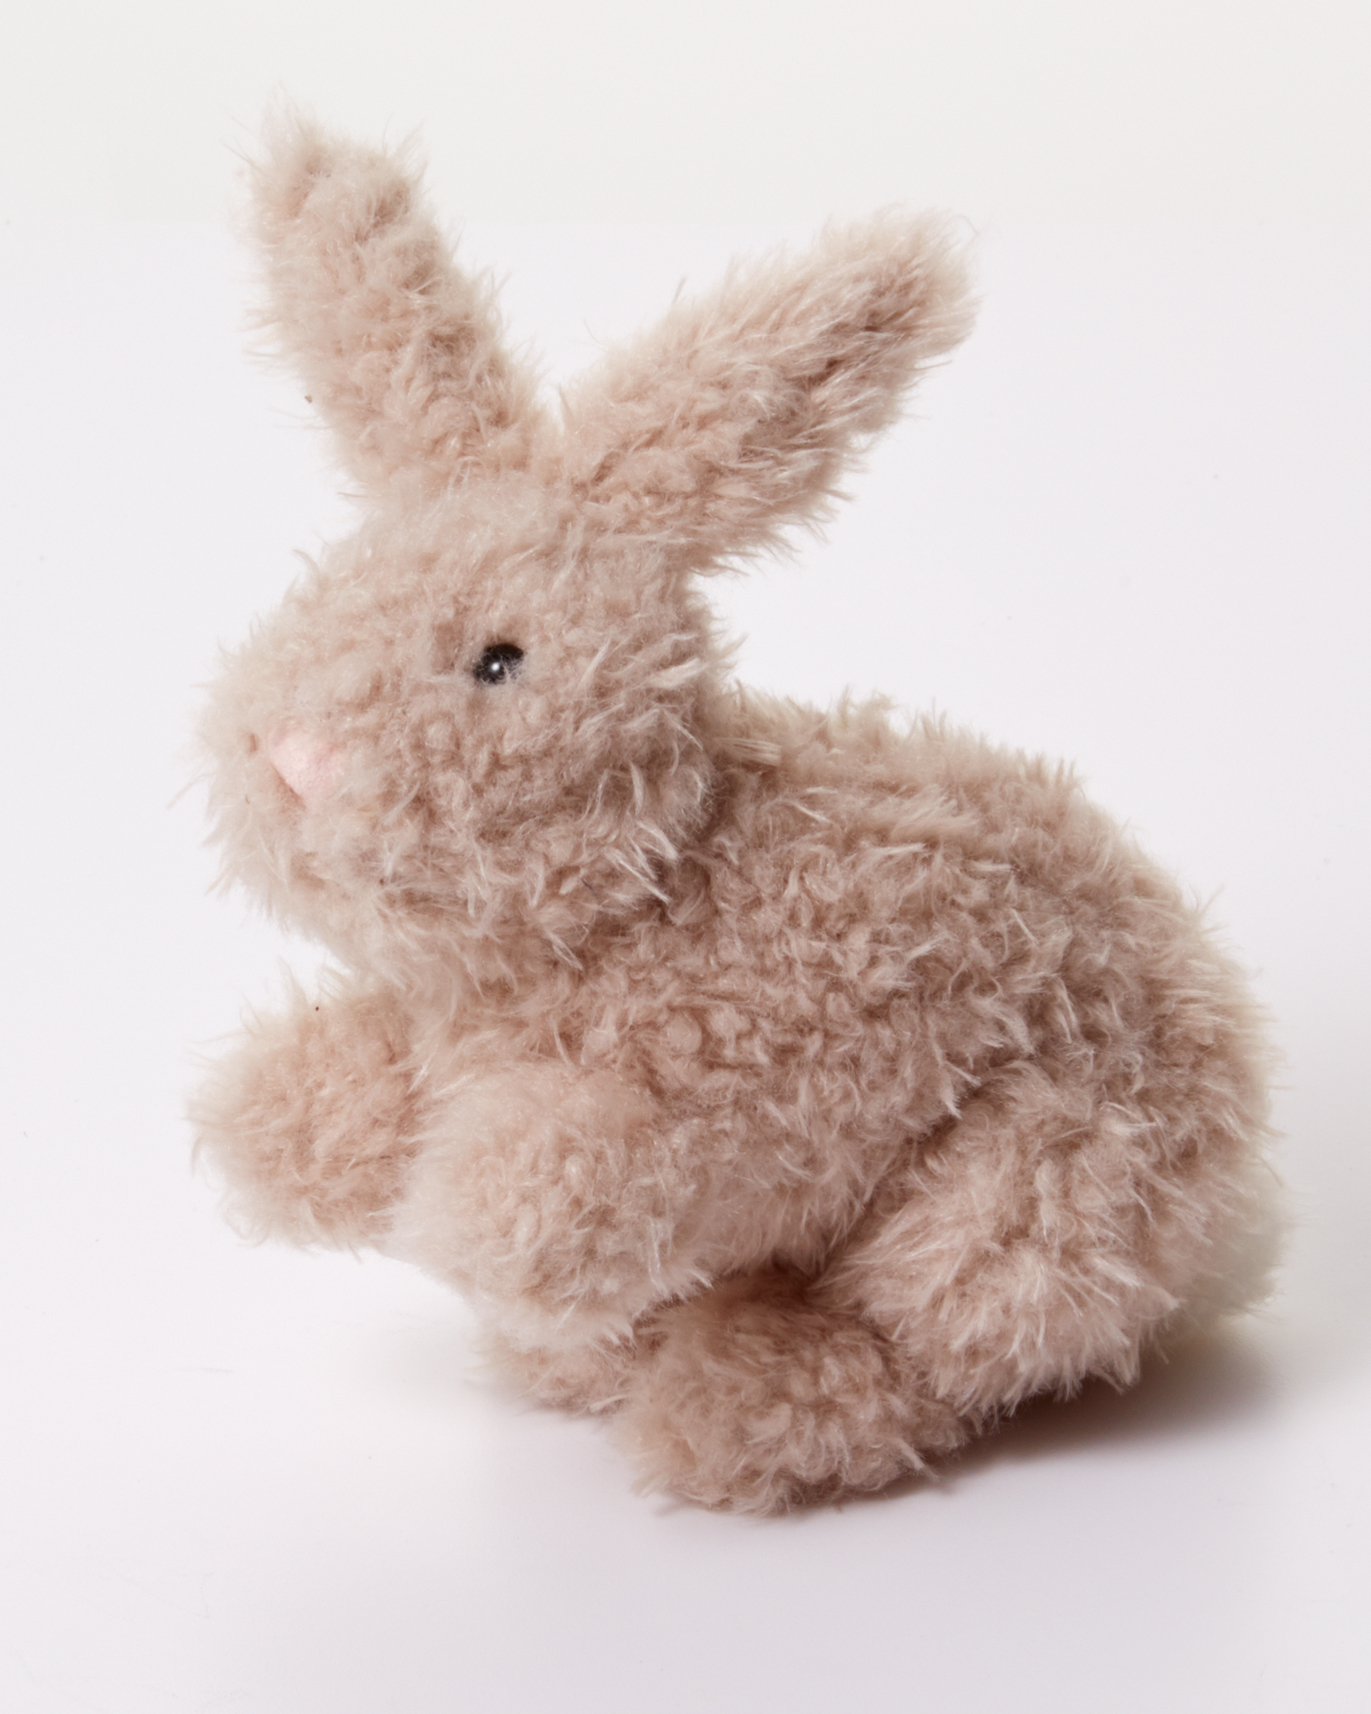 toddler-toy-jelly-cat-bunny-2730-d112789-0116.jpg